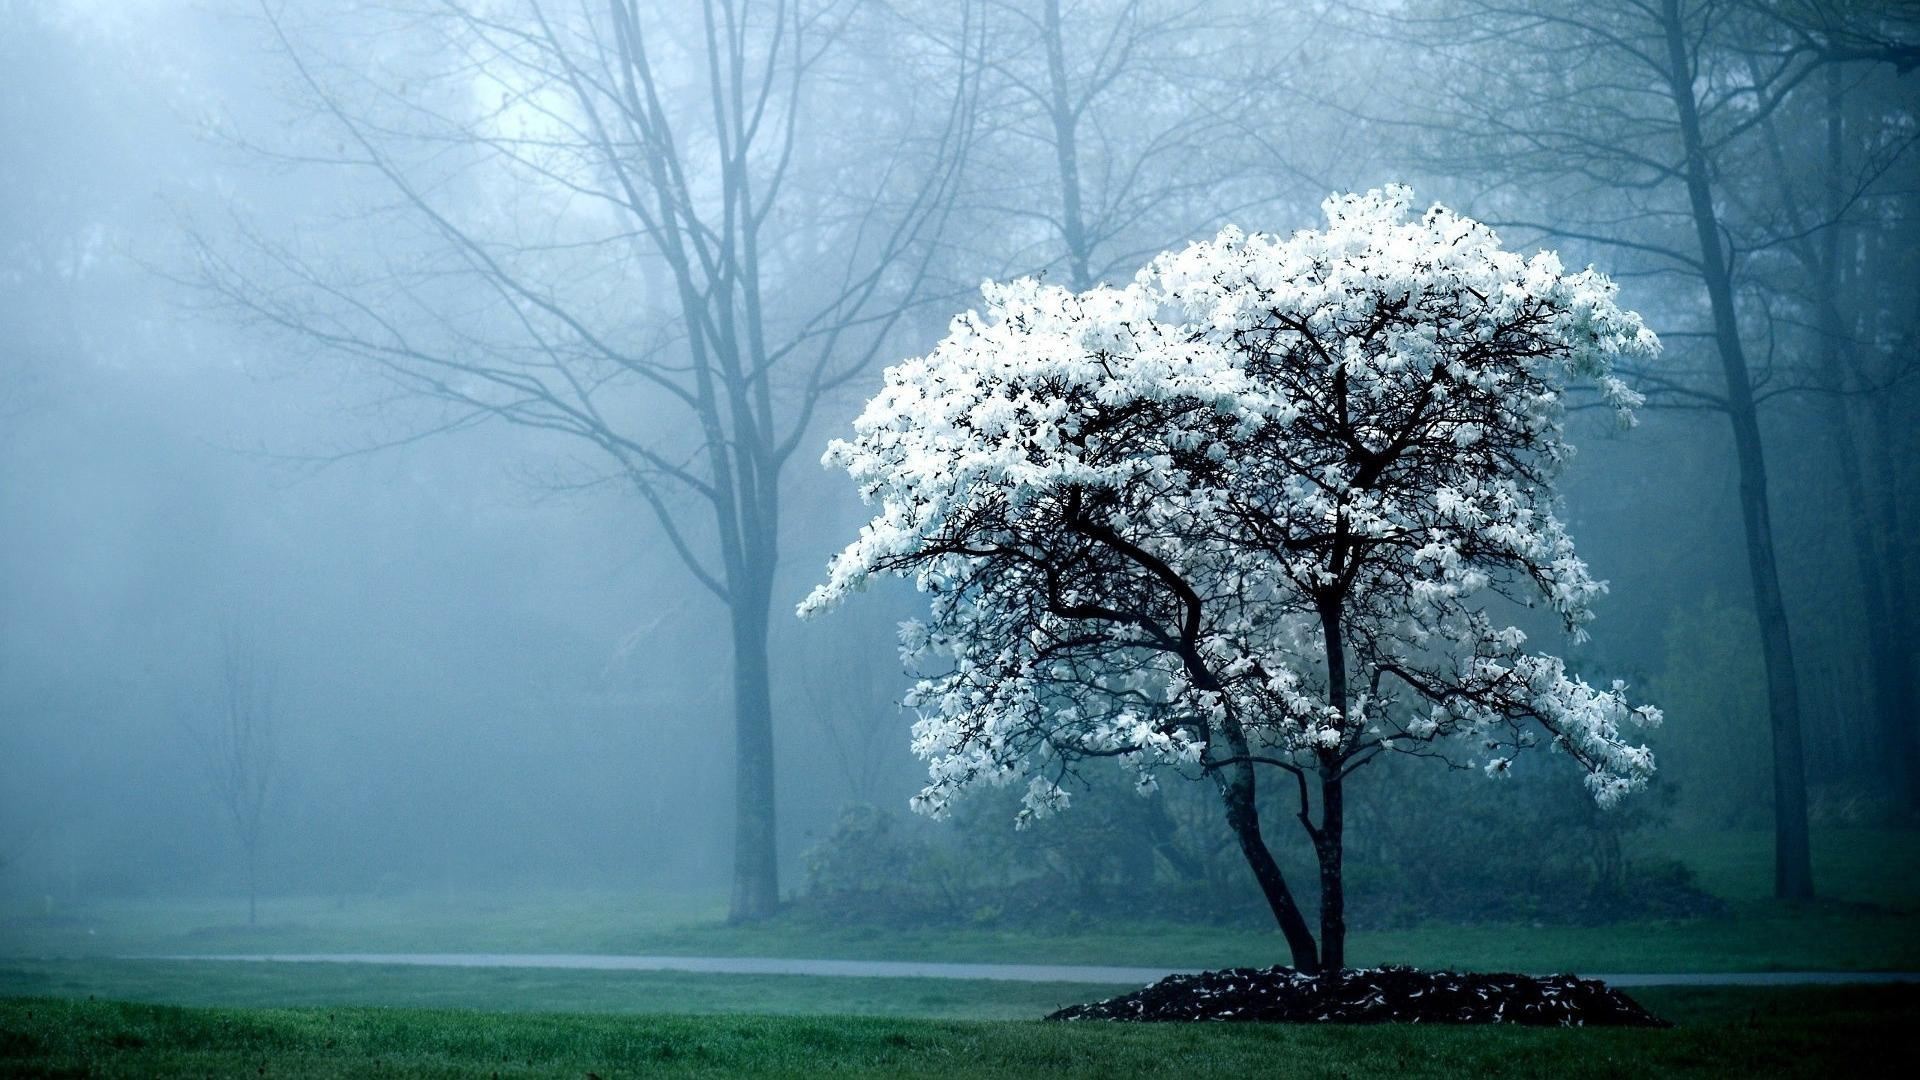 Early Morning Fog  1920 x 1080  Download  Close